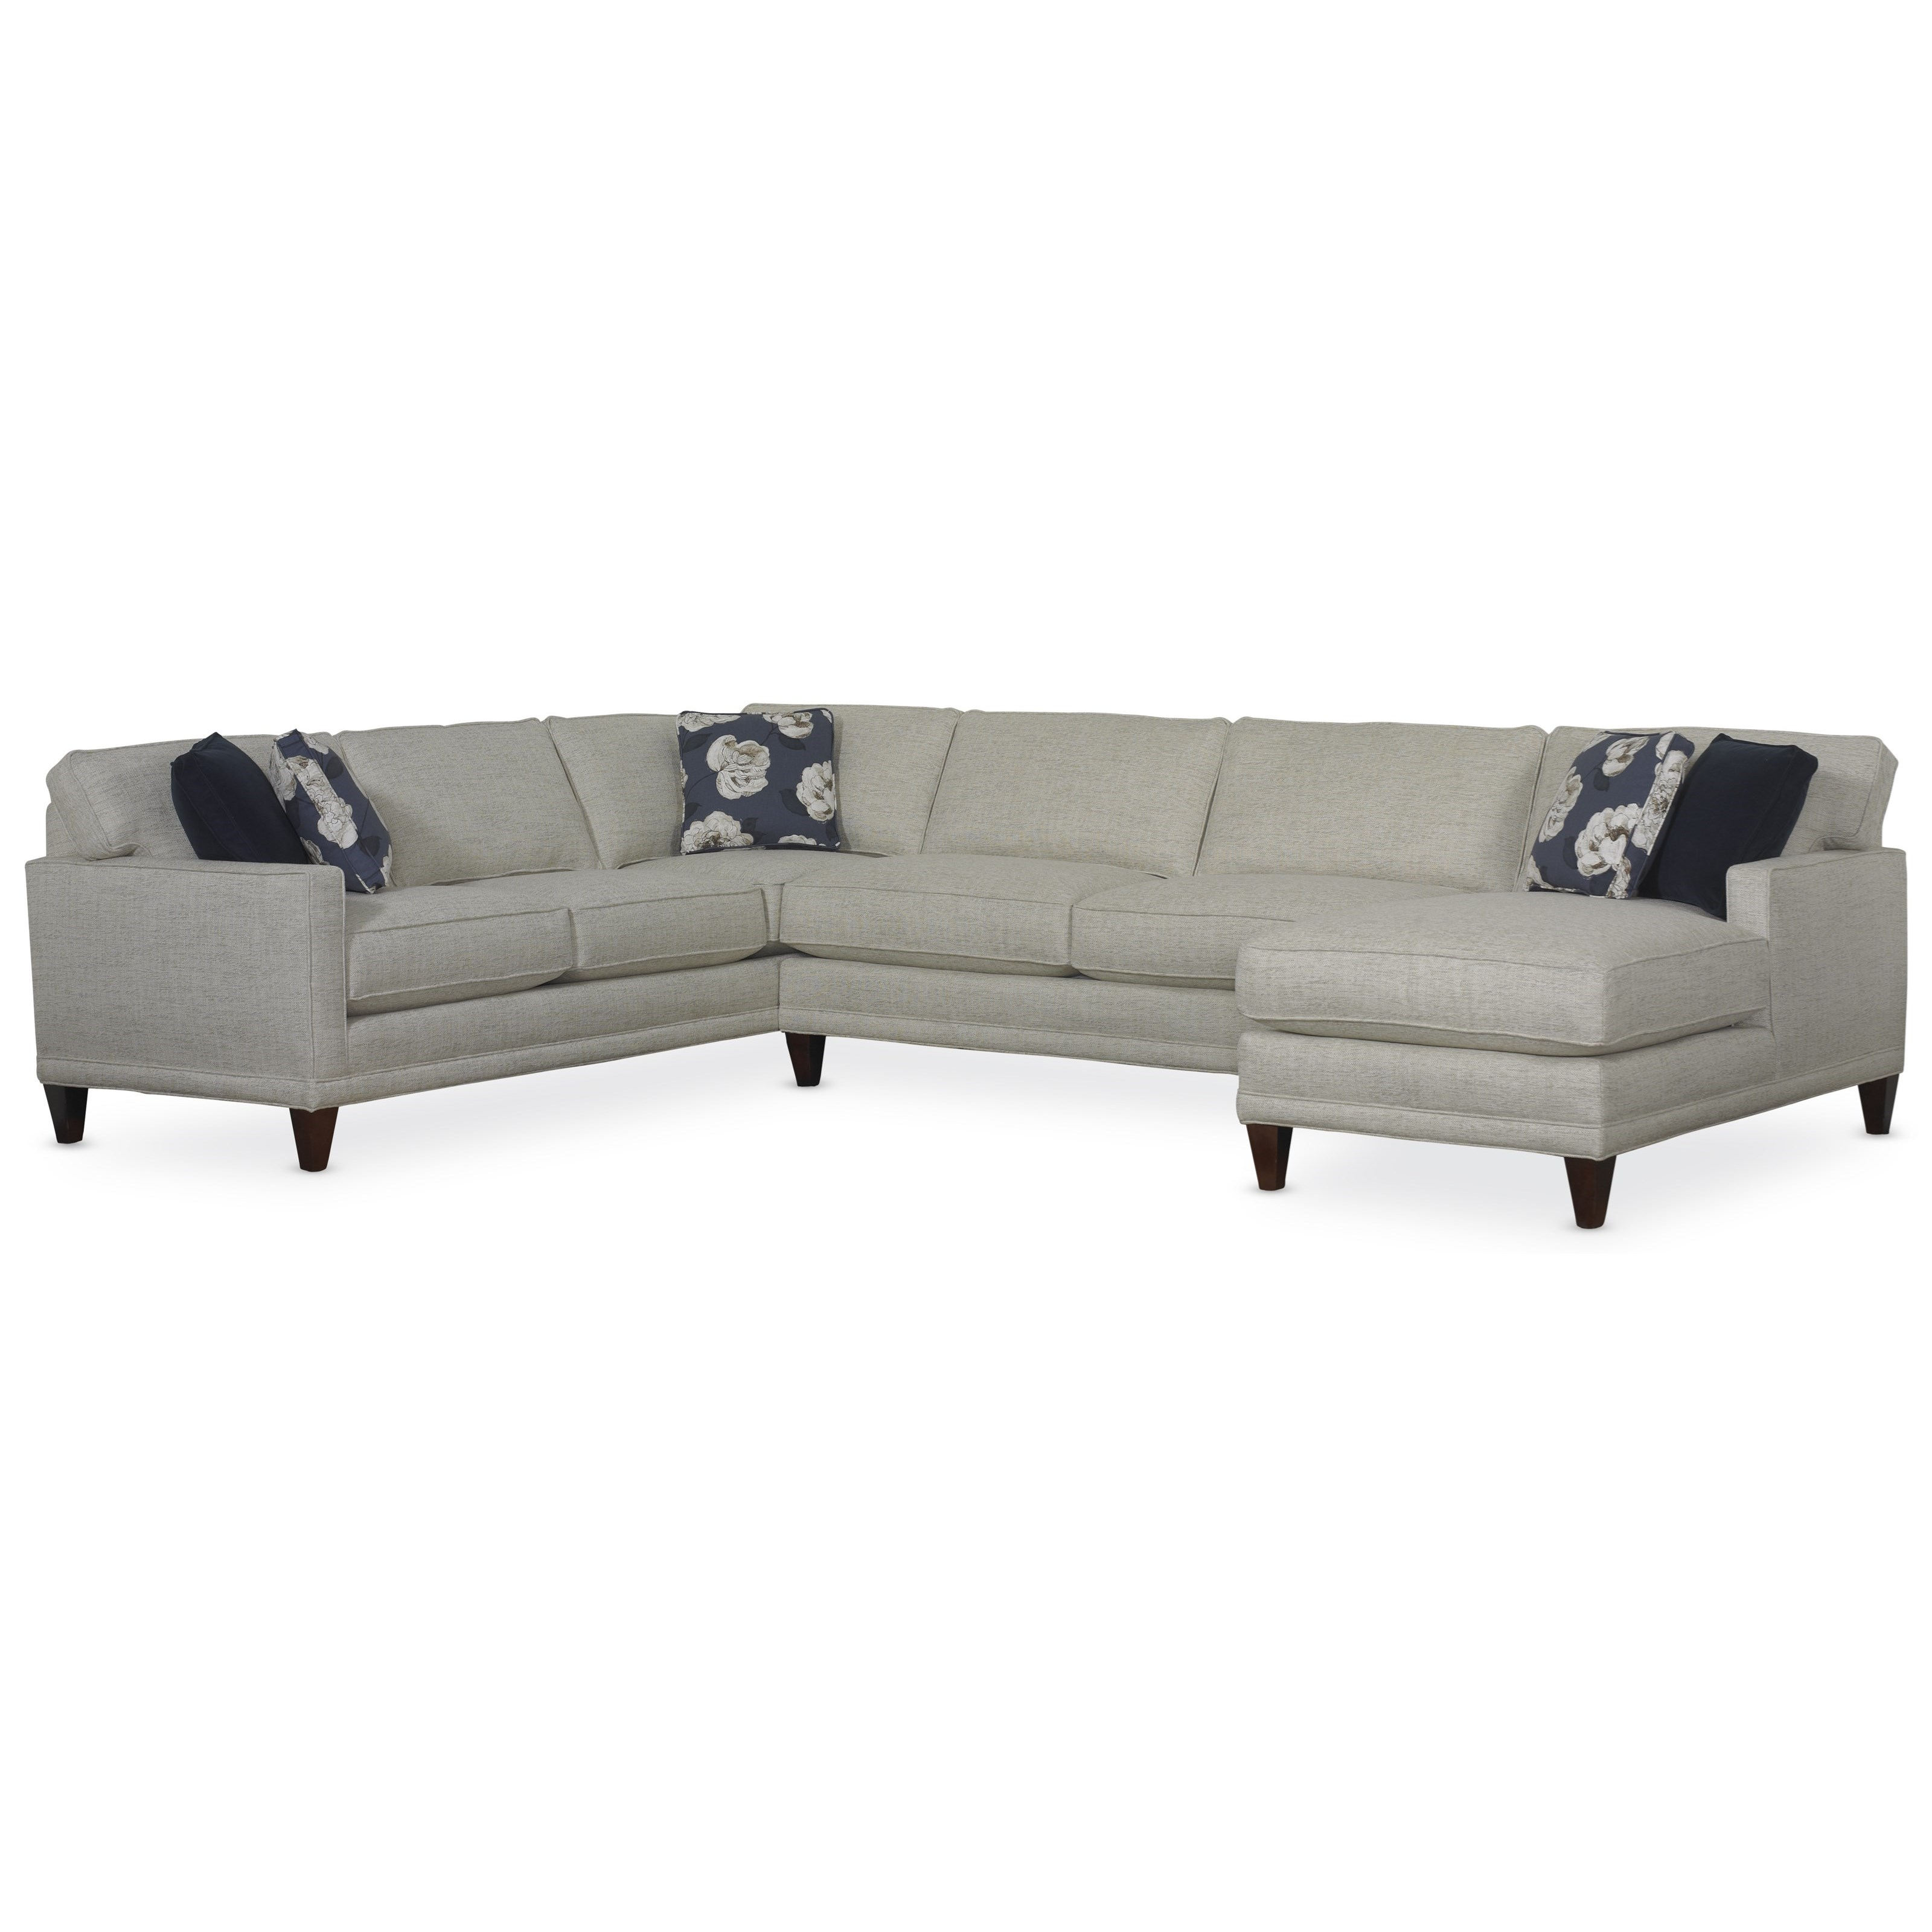 Townsend Three Piece Sectional Sofa Group by Rowe at Thornton Furniture